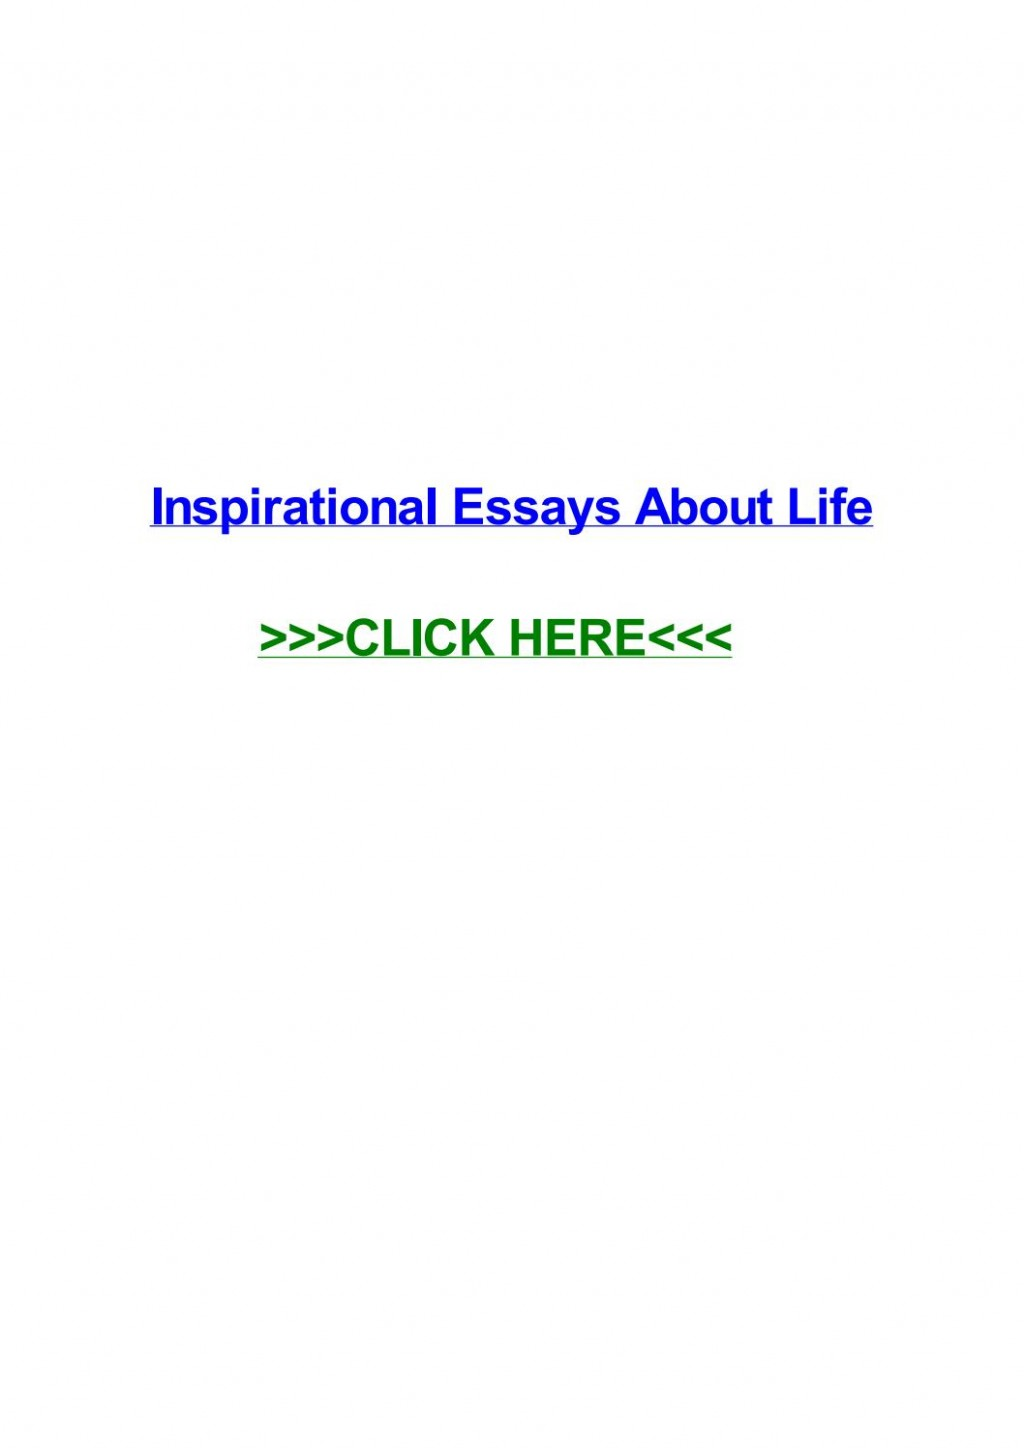 007 Essay Example Page 1 Inspirational Breathtaking Essays About Life And Struggles For Youth Large